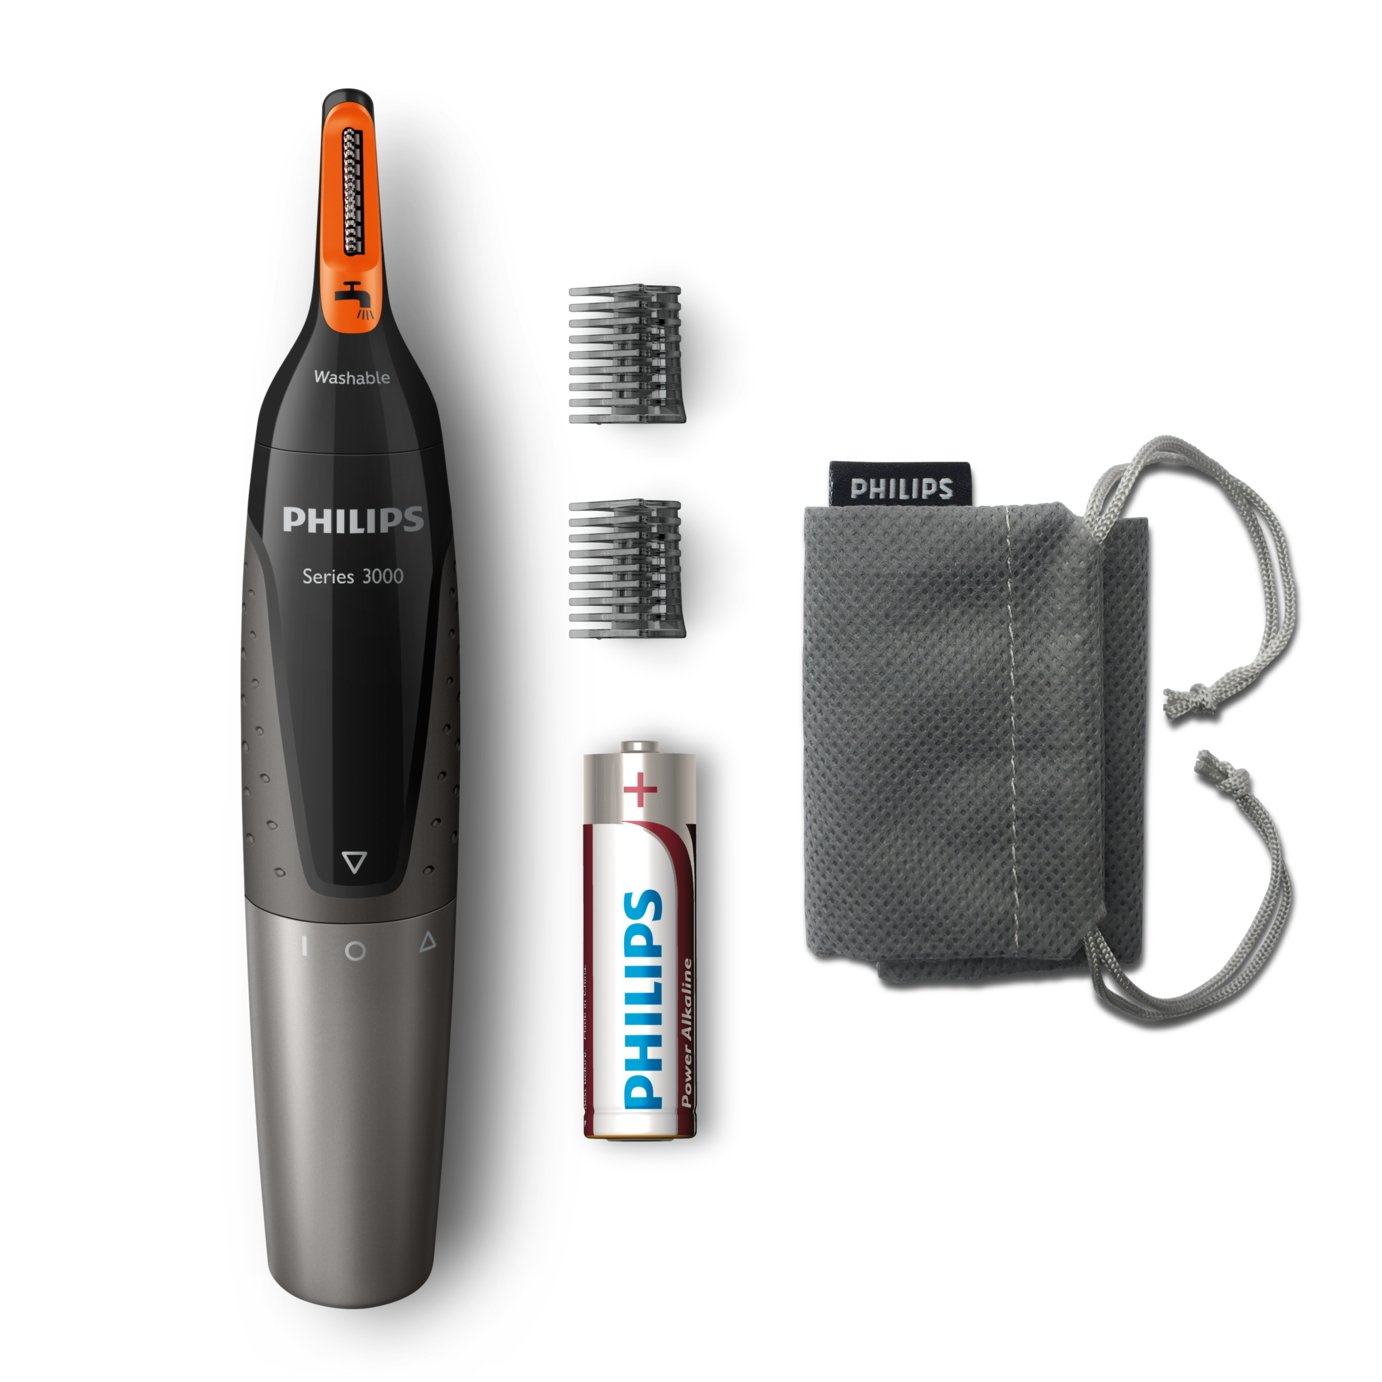 Ear/nose hair trimmer Philips NT3160/10 Series 3000 washable Black, Grey lowest price